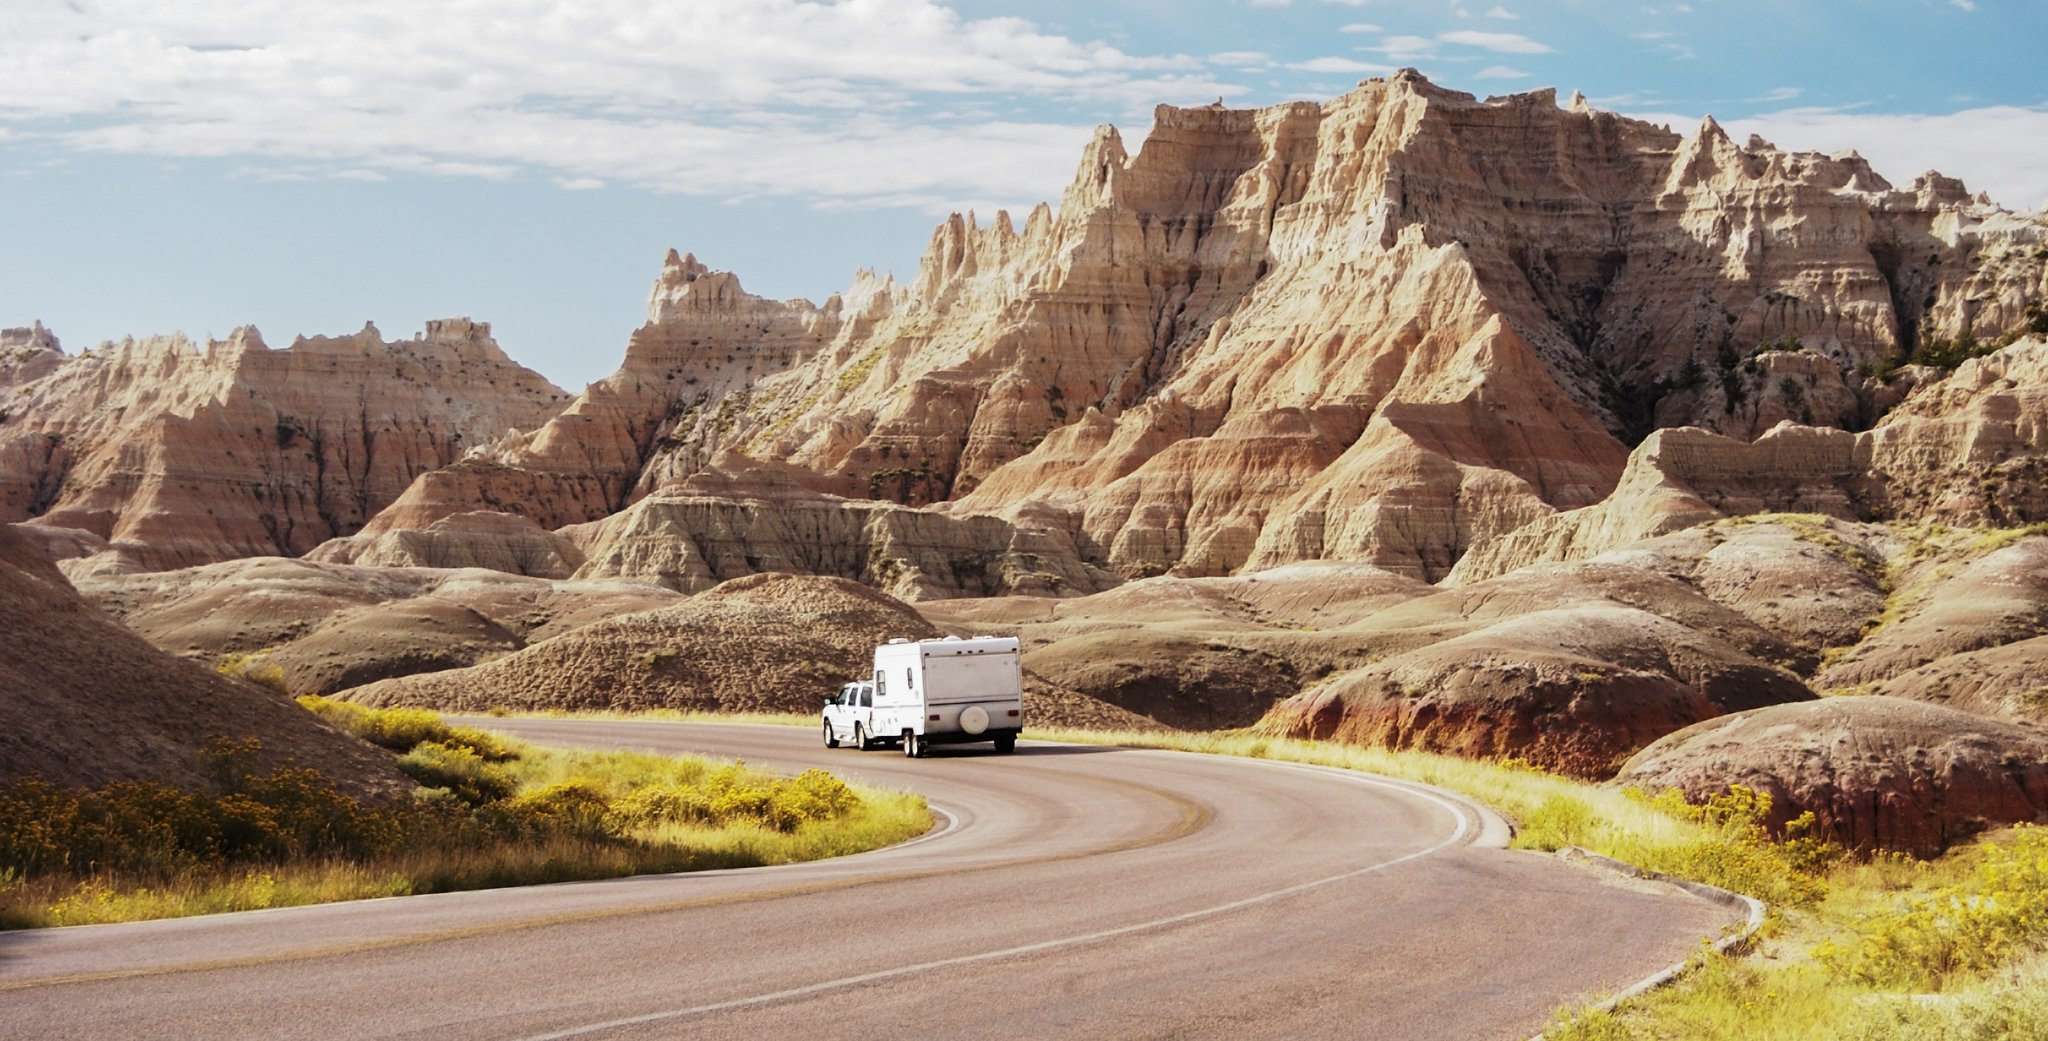 7 Breathtaking Places You Must Visit In An RV